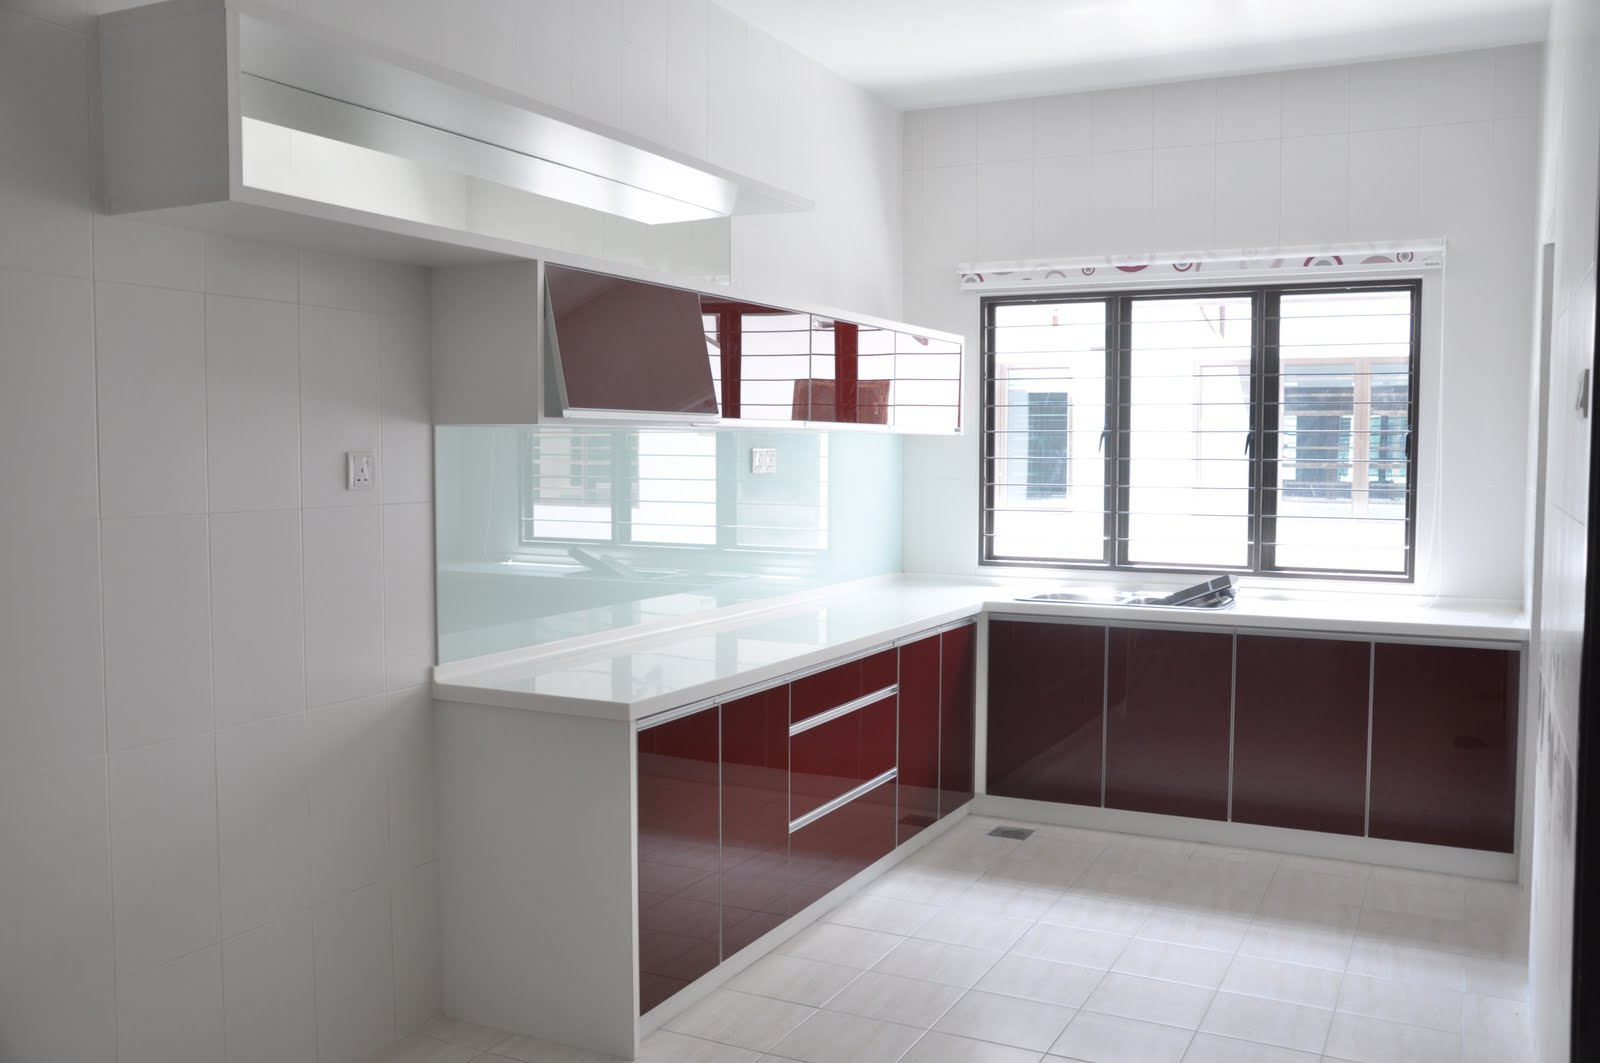 Nova Kitchen Deco Sdn Bhd KITCHEN CABINET IN RED ACRYLIC